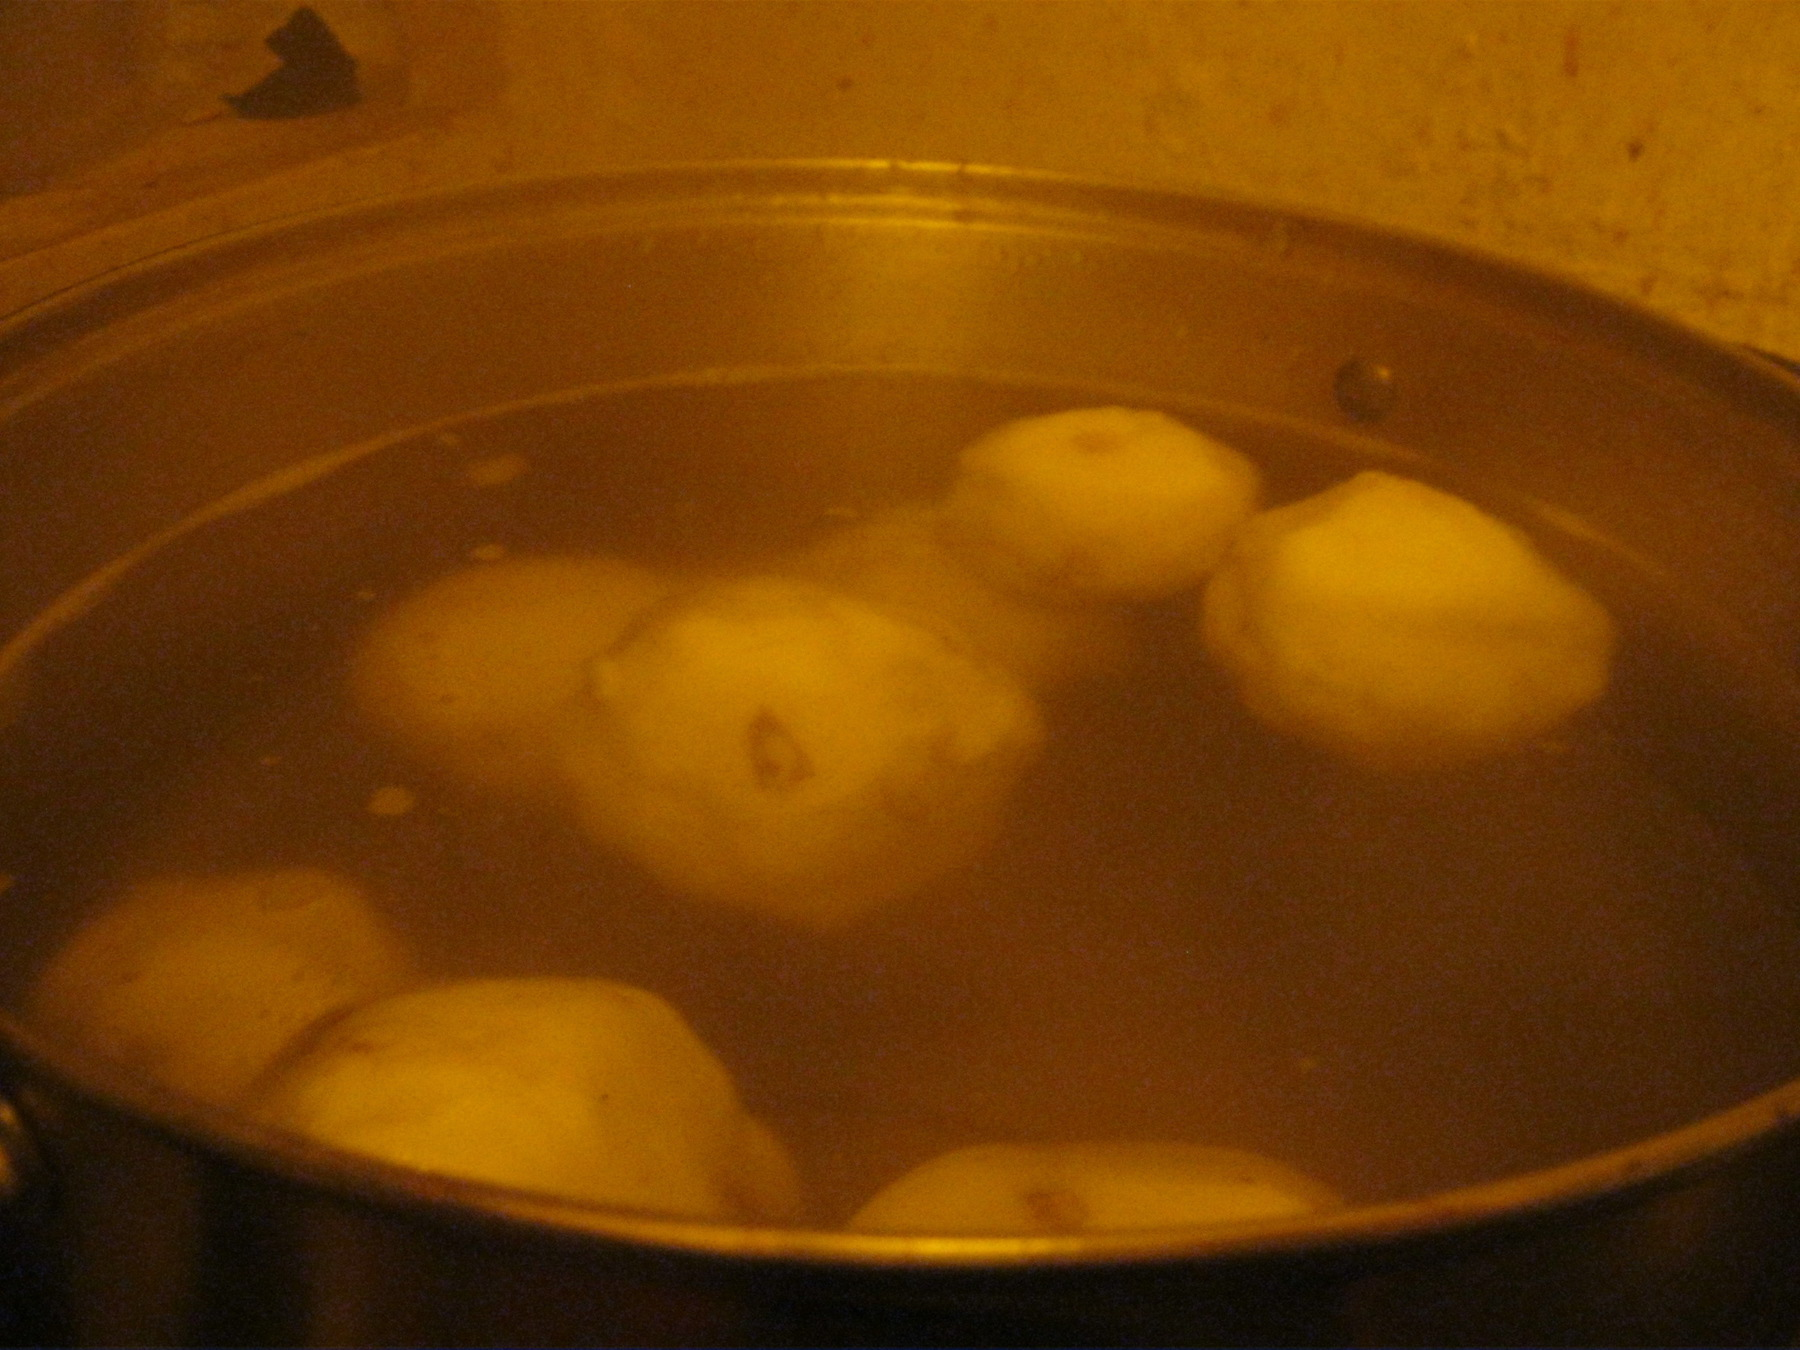 Most of the dumplings in this pot have already risen to the surface indicating that they are done.